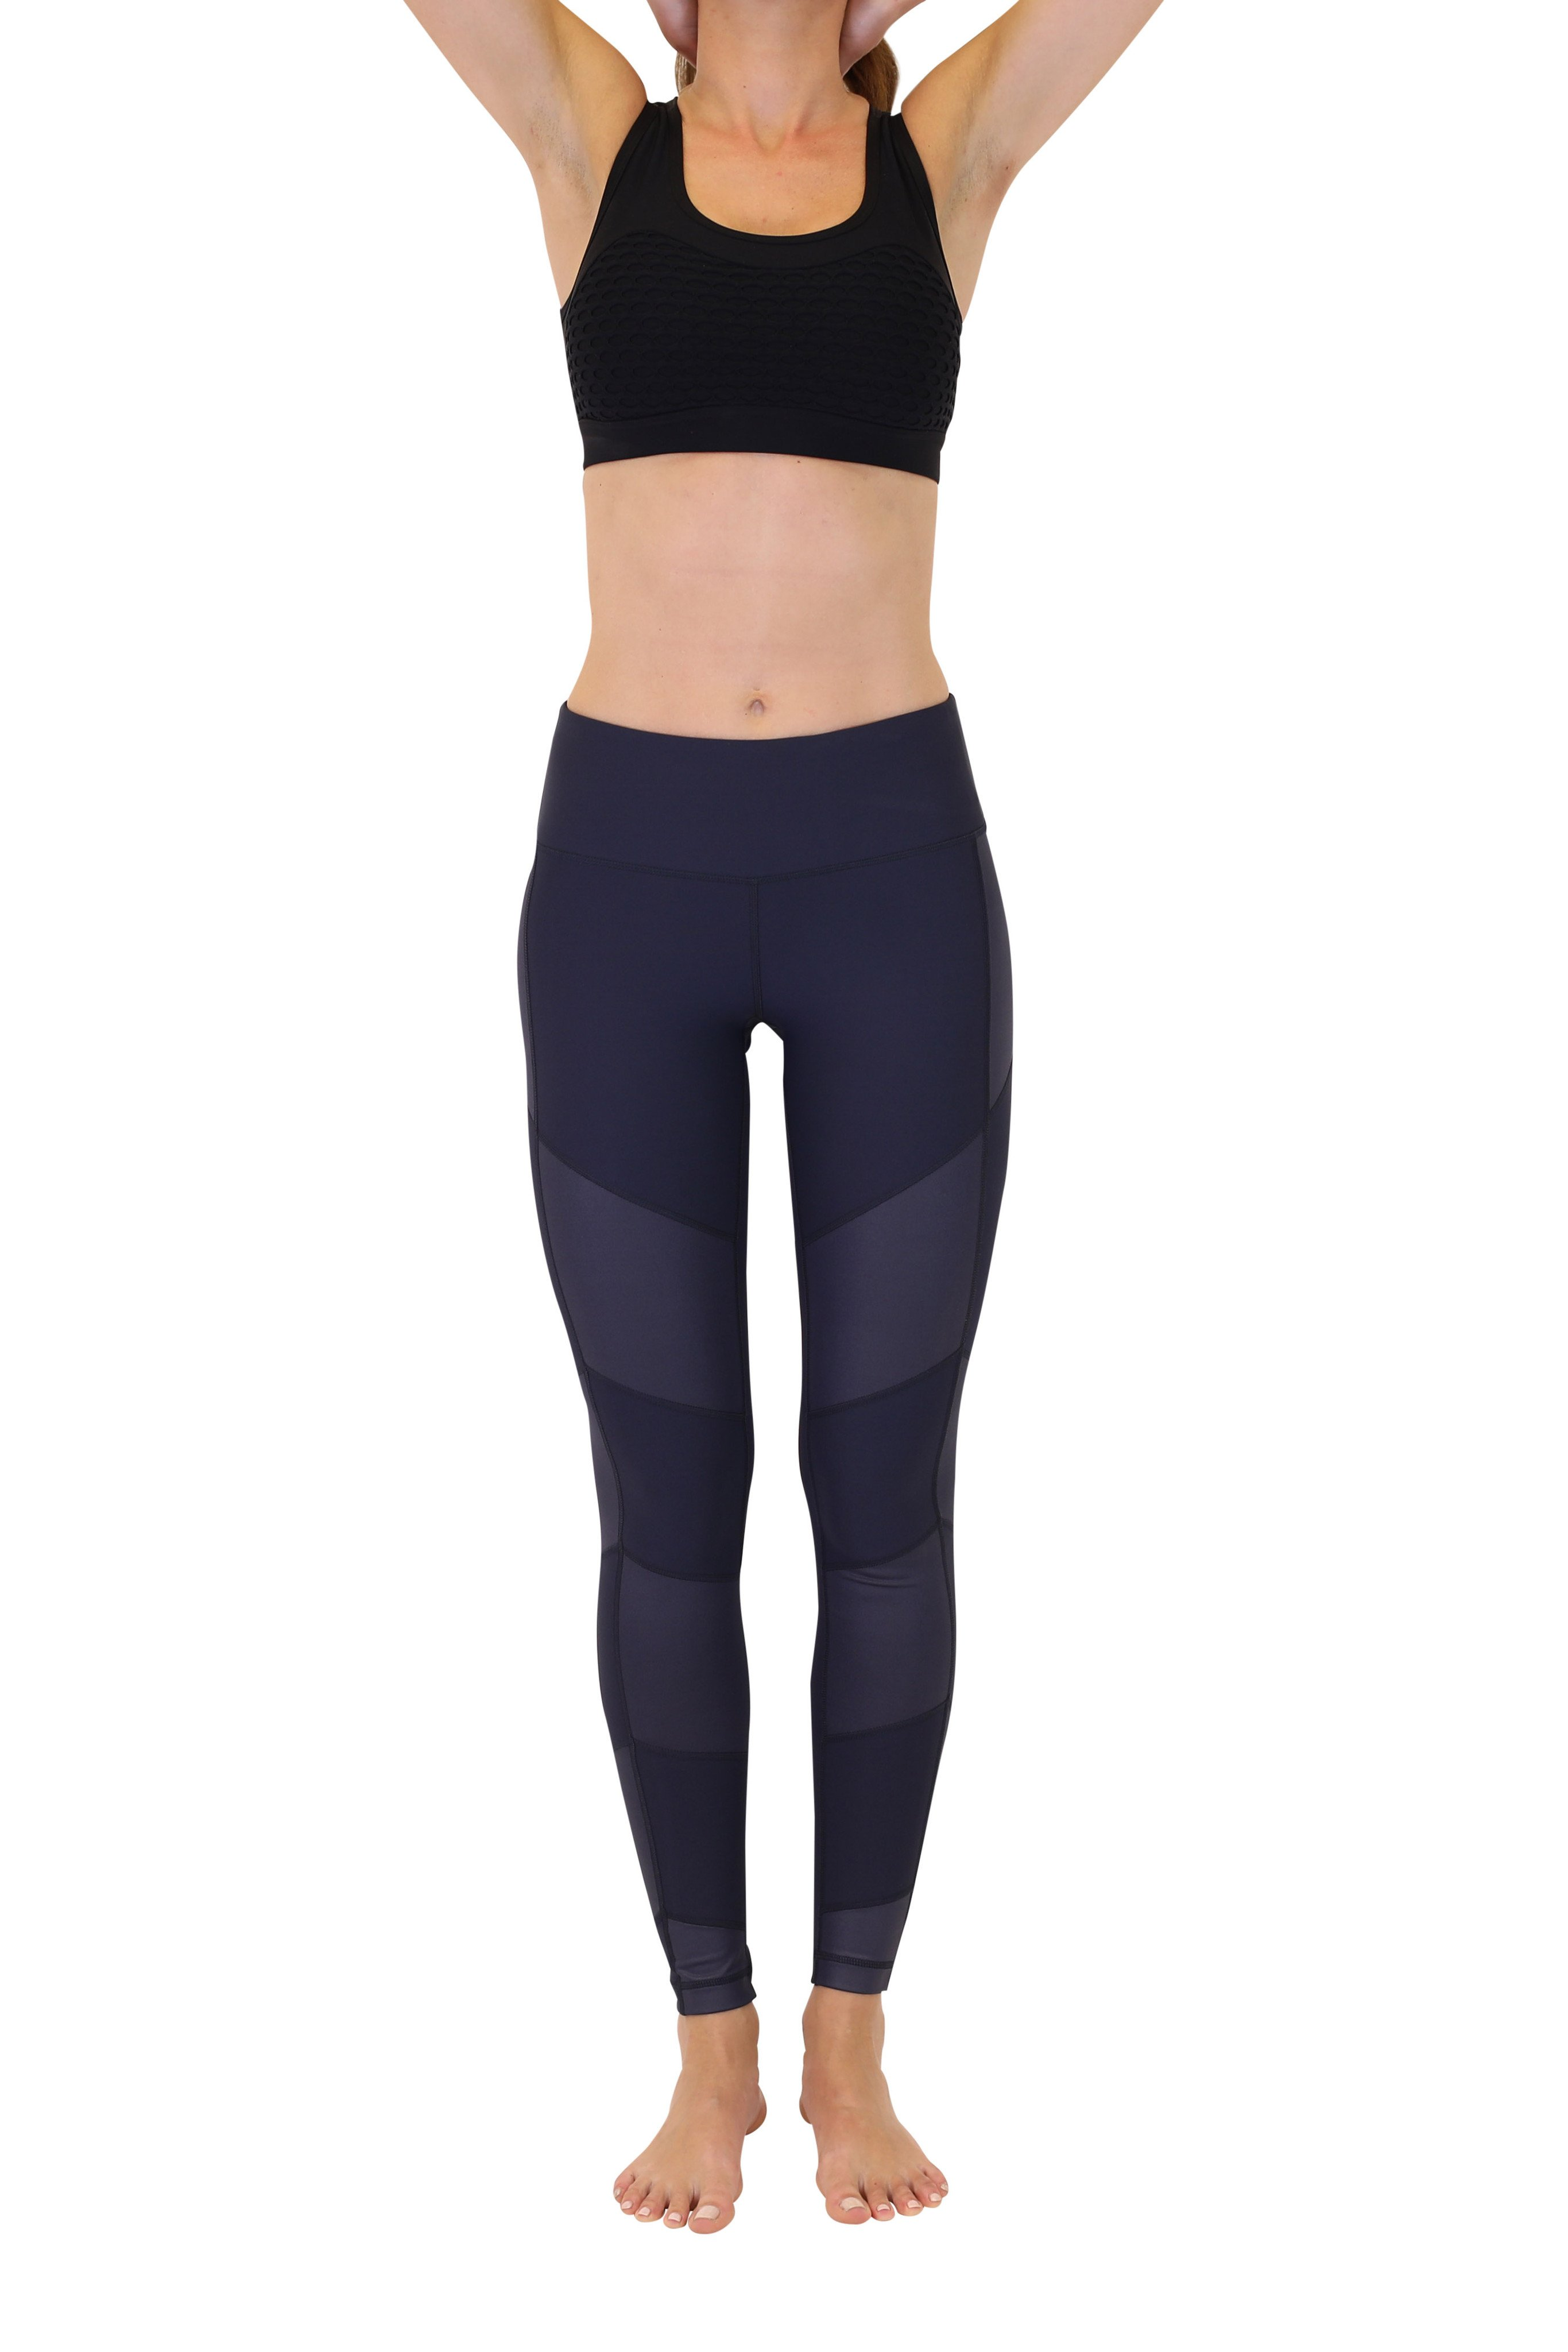 90 Degree By Reflex - High Shine Contrast Leggings